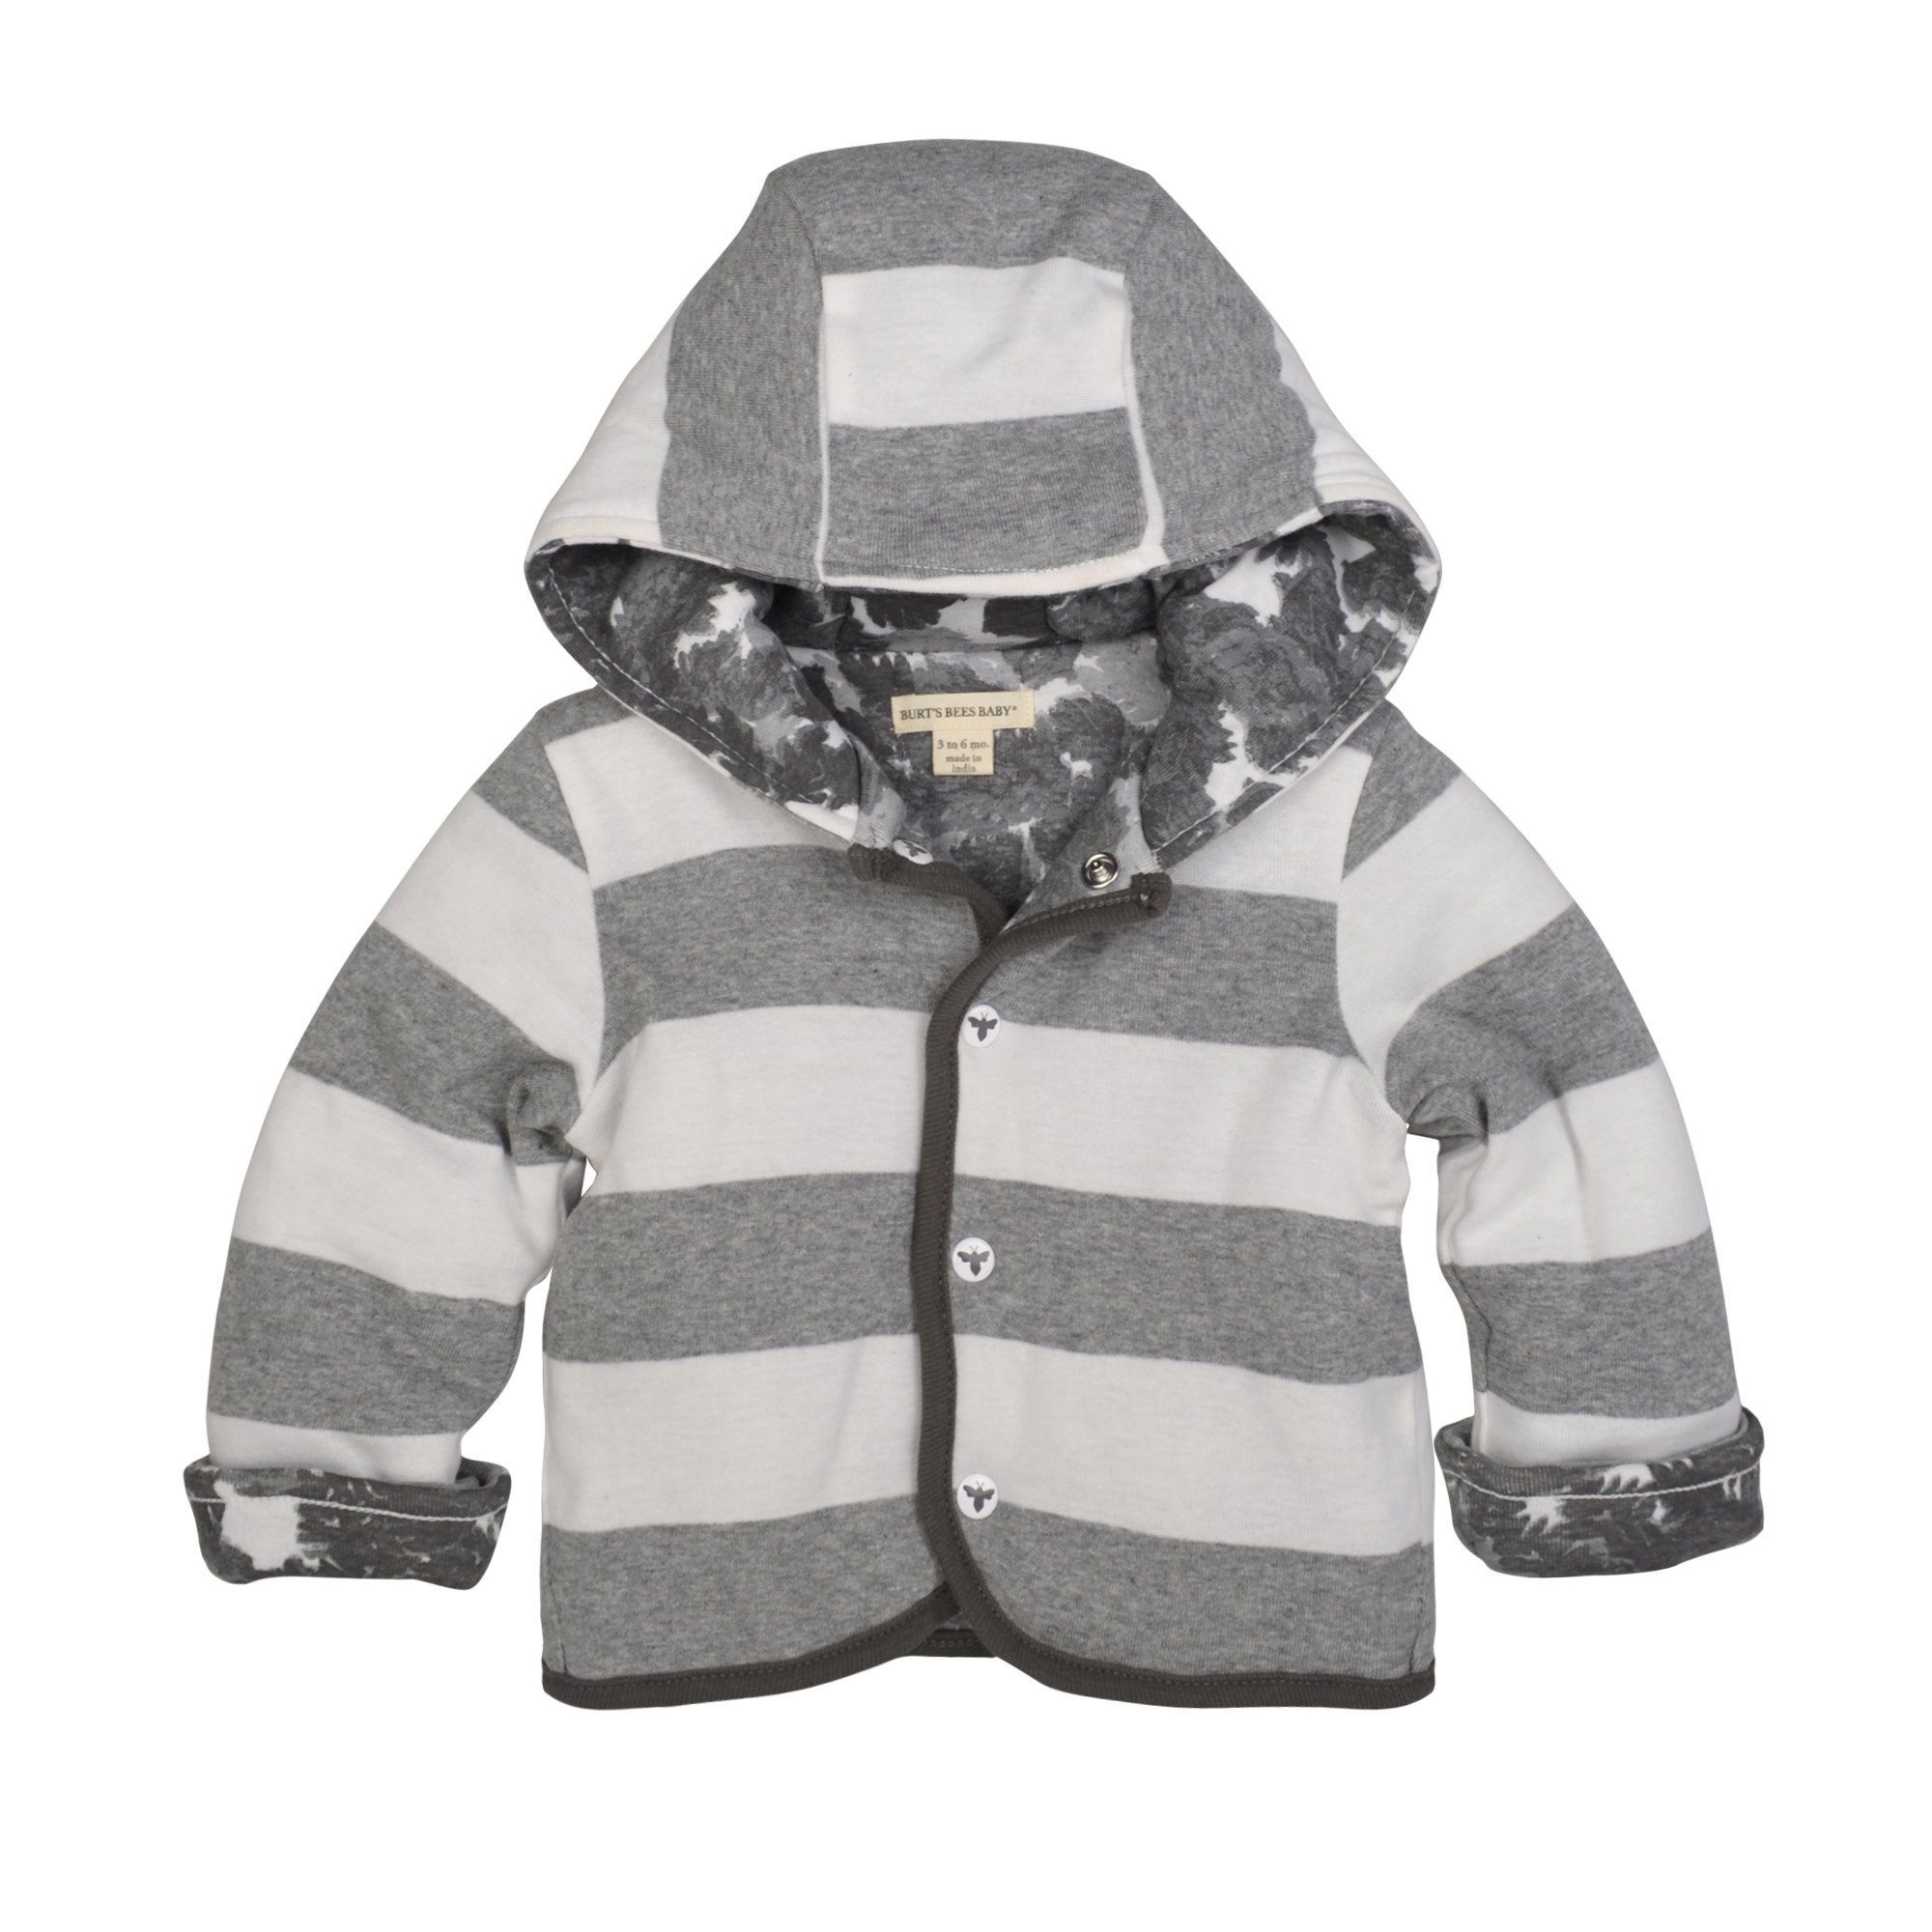 Burt's Bees Baby Baby Organic Snap Front Reversible Jacket, Heather Grey Canopy, 3-6 Months by Burt's Bees Baby